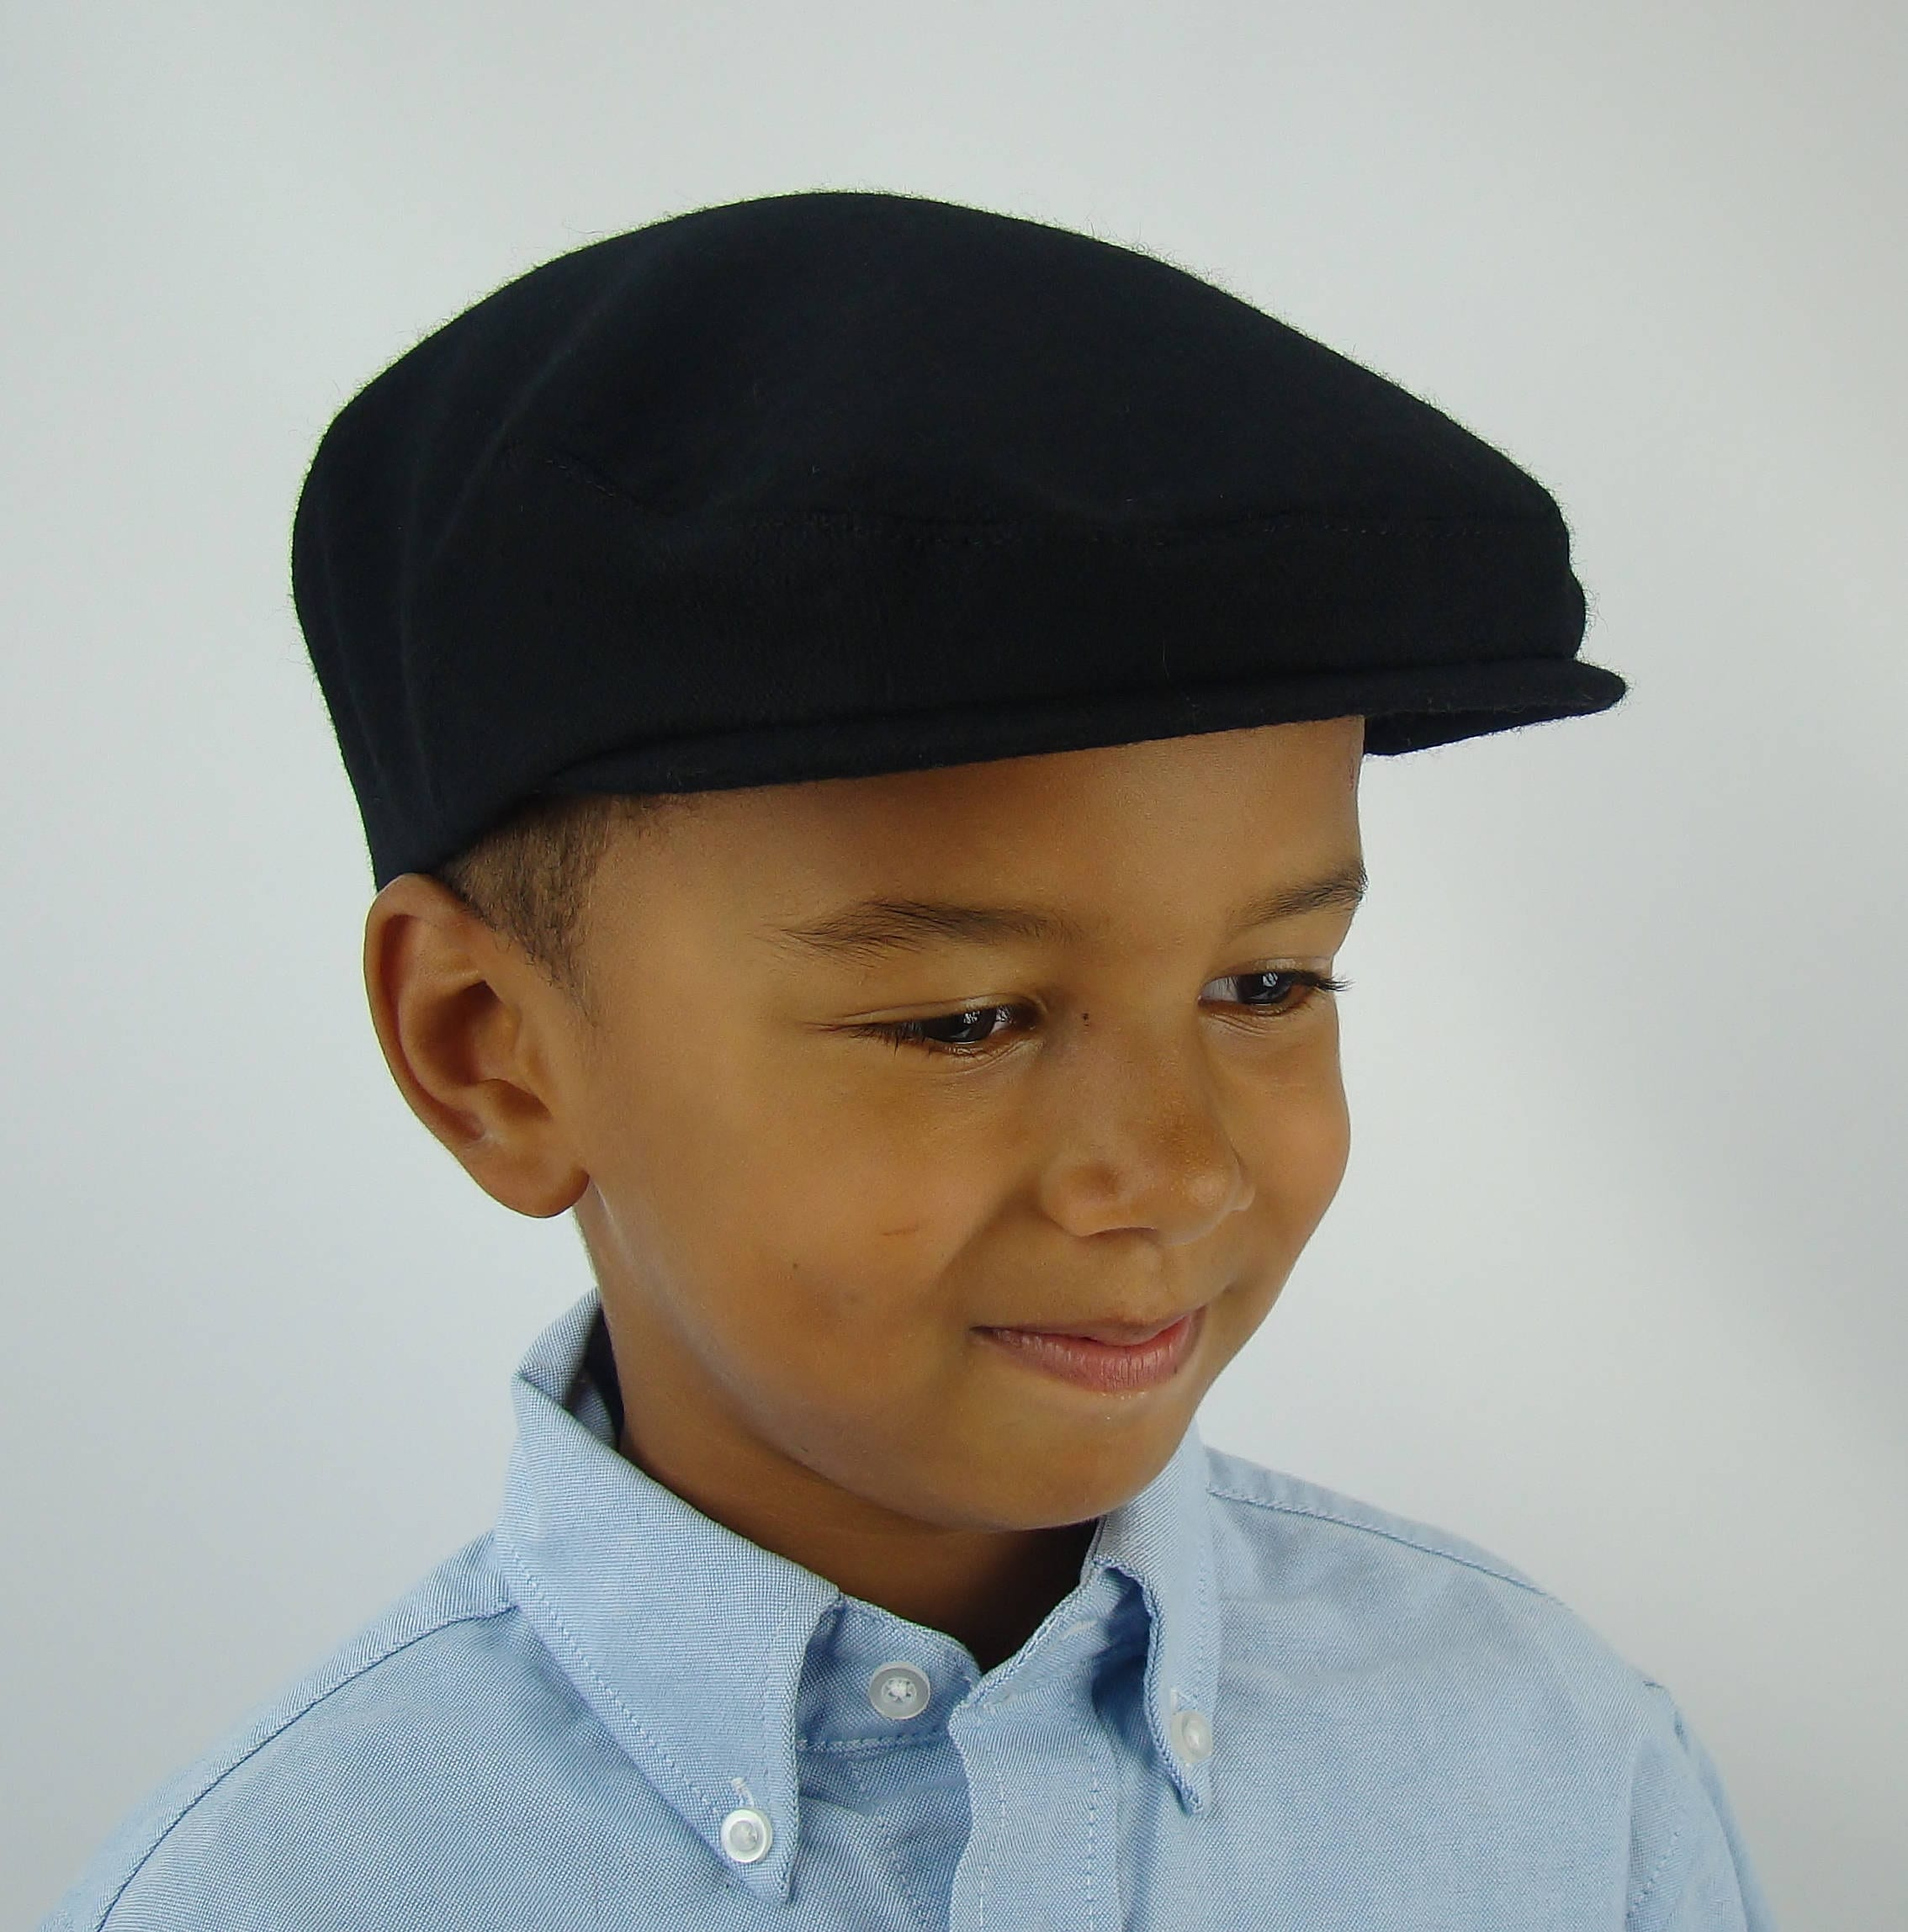 Black Wool Sixpence Ivy Hat - Flat Jeff Cap 5689be57cde